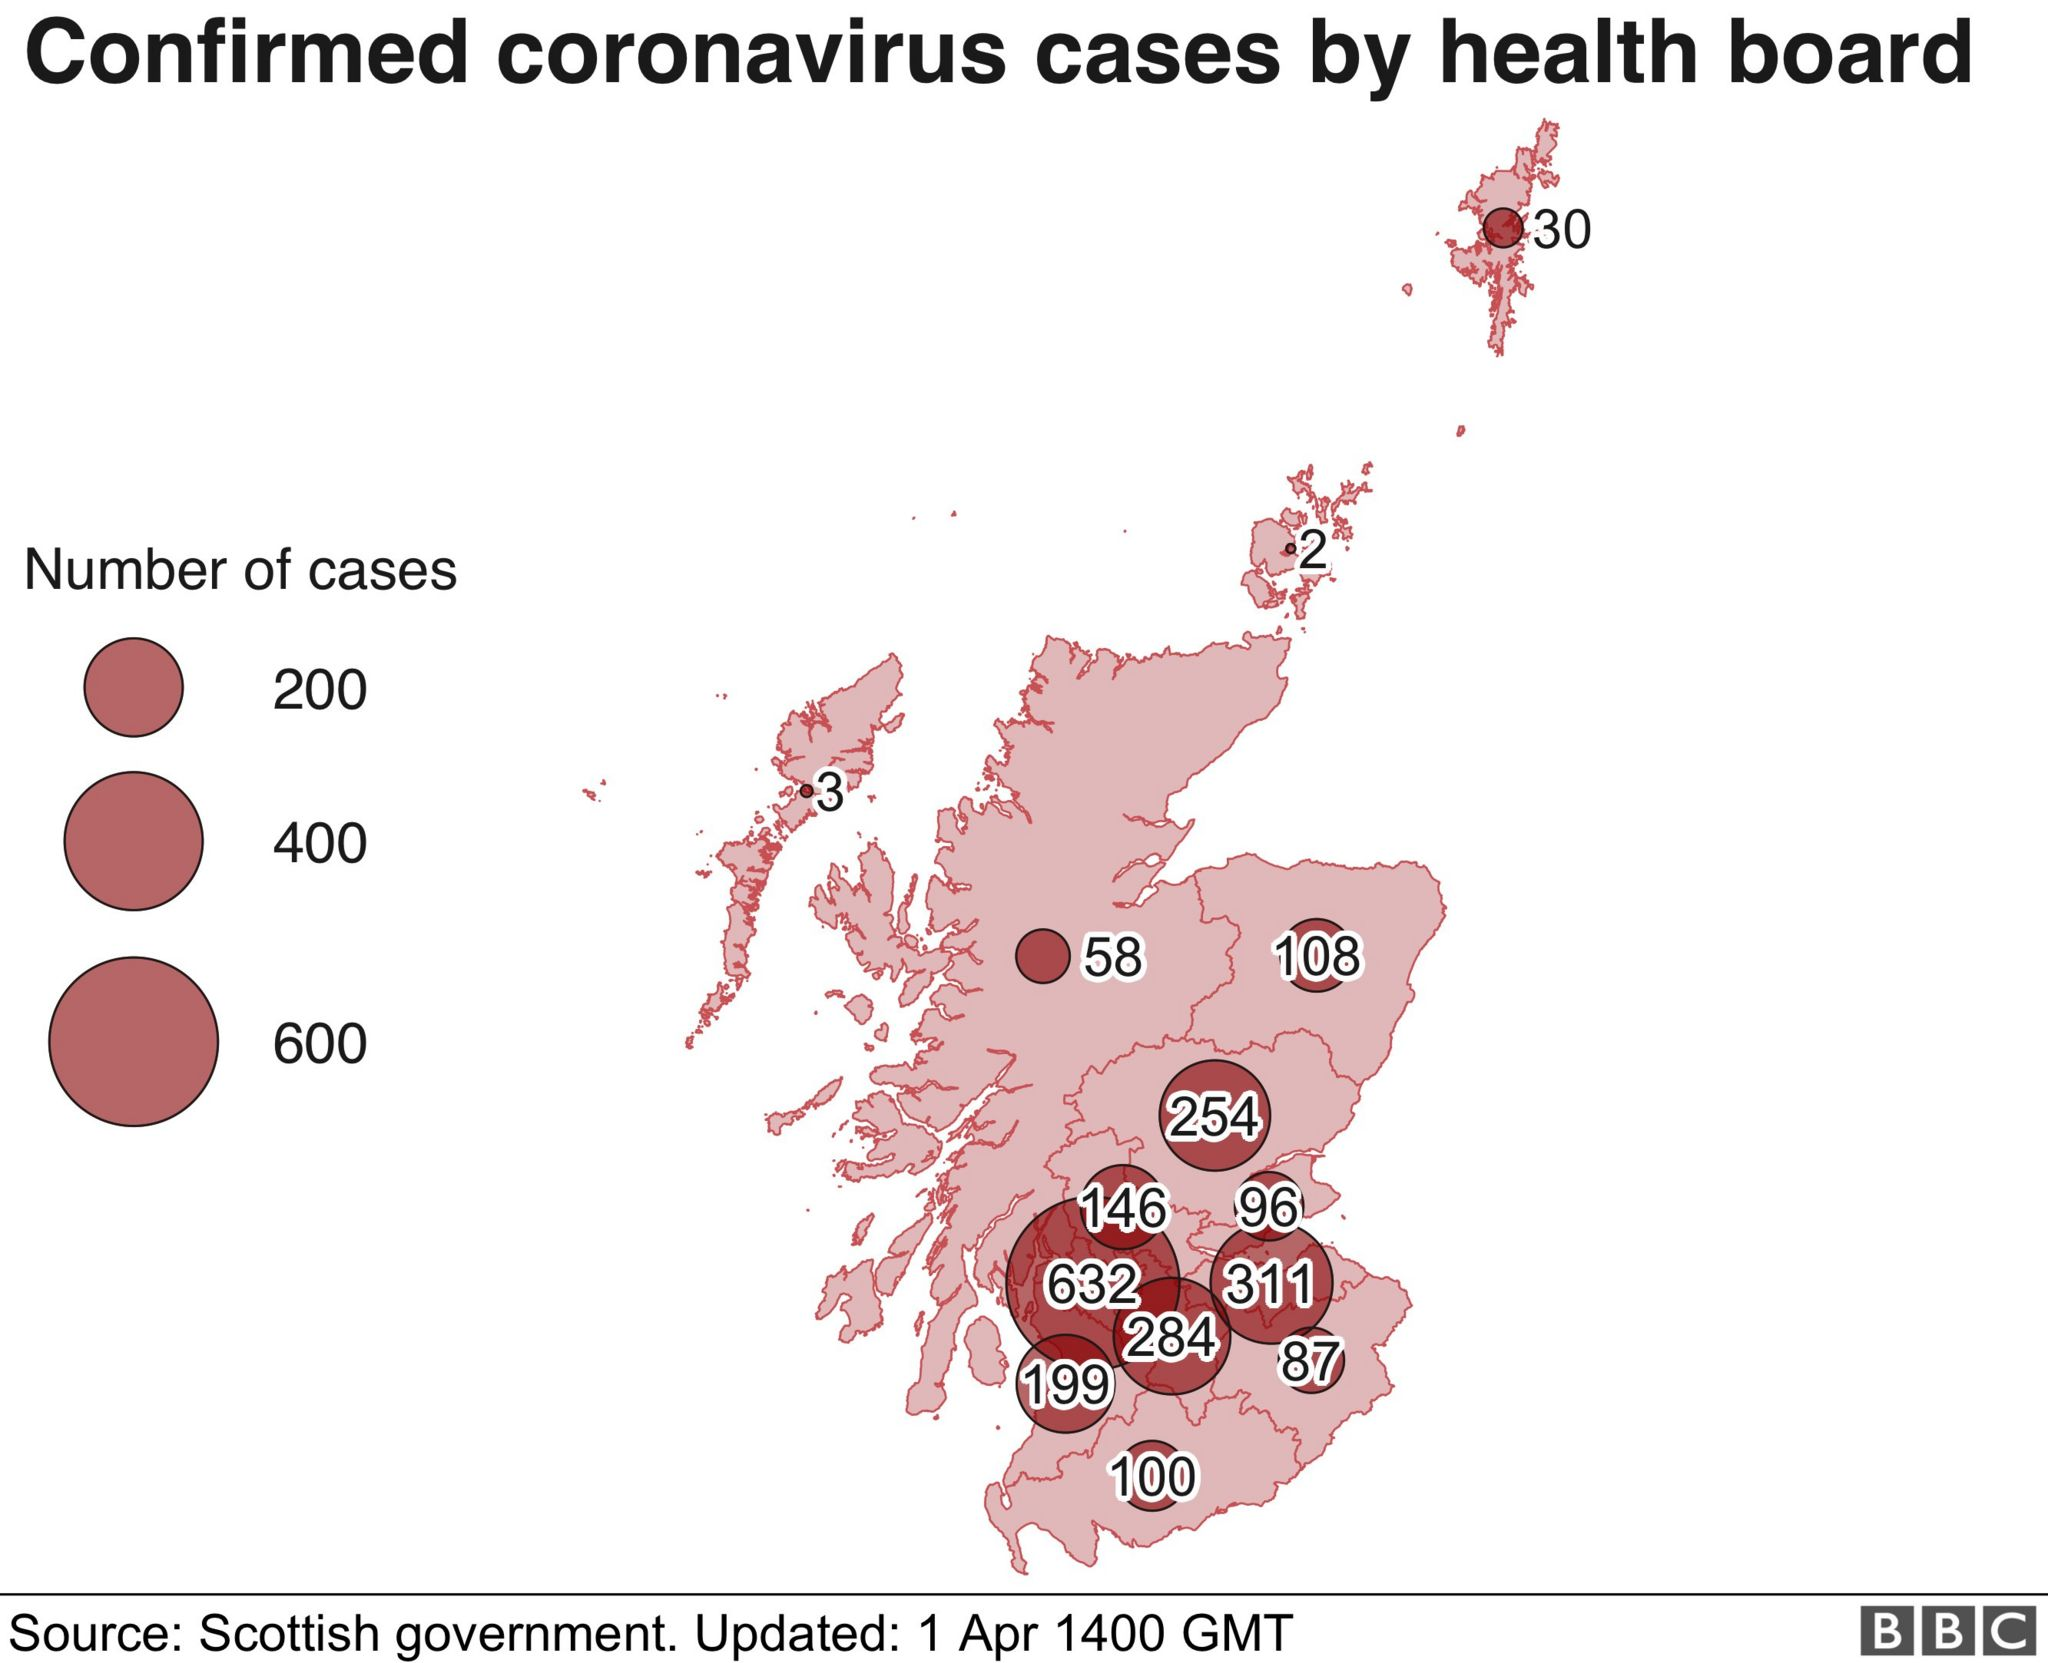 confirmed cases in scotland by health board